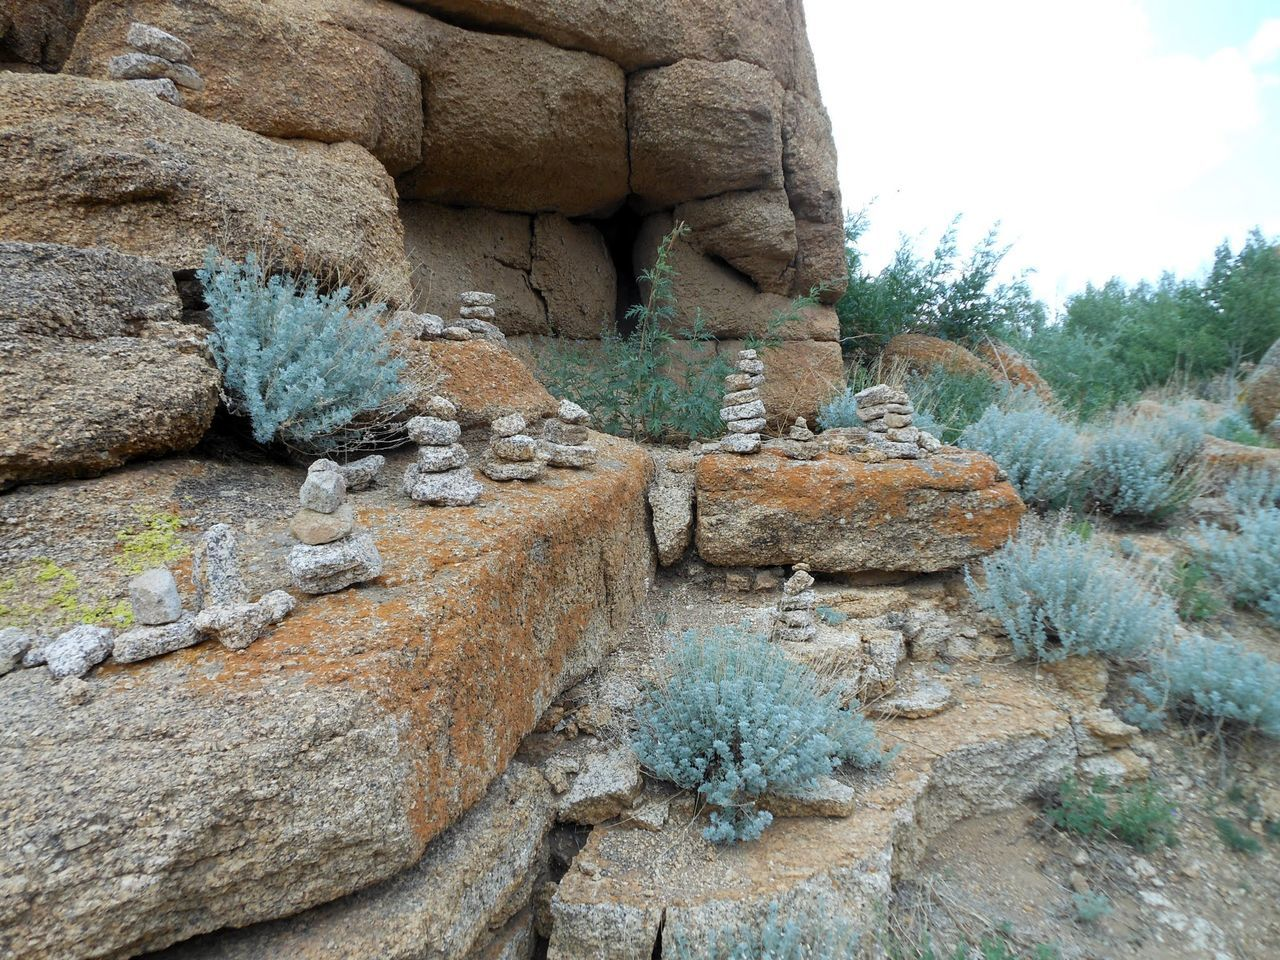 Beauty In Nature Day Eroded Geology Growth Low Angle View Nature No People Non-urban Scene Outdoors Physical Geography Rock Rock - Object Rock Formation Scenics Sky Stone Tranquil Scene Tranquility Travel Destinations